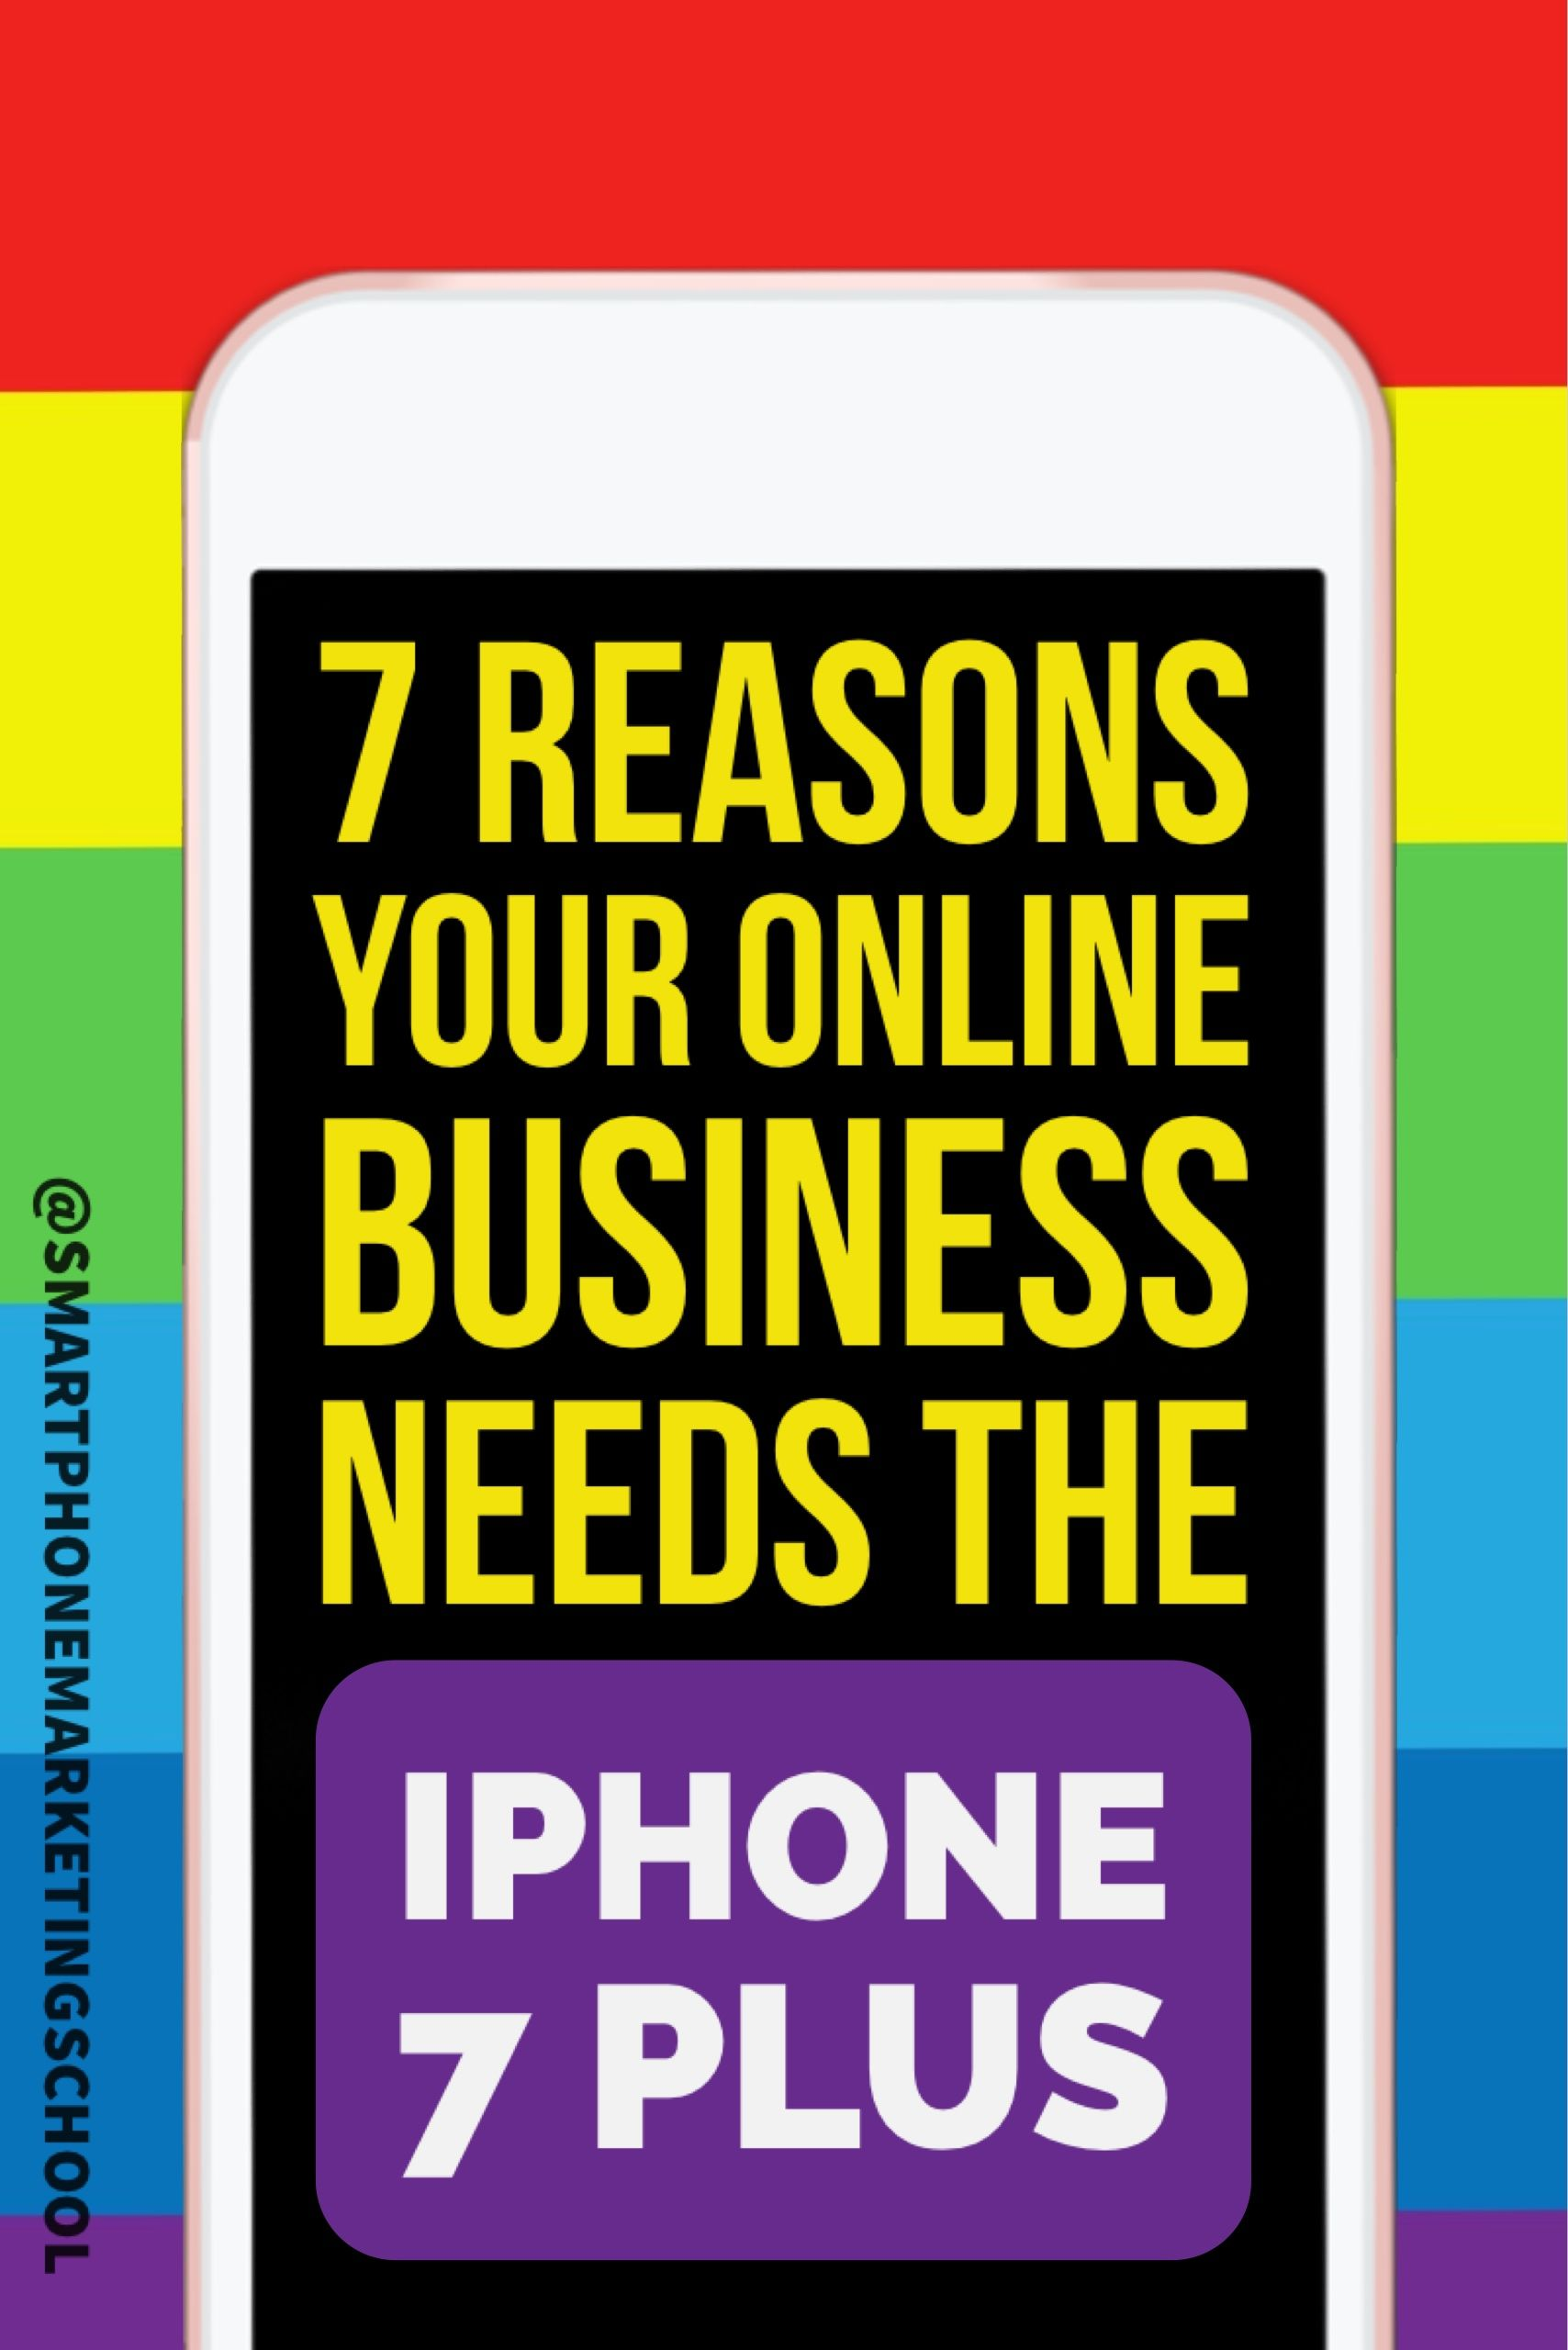 7 Reasons Your Online Business Needs The iPhone 7 Plus